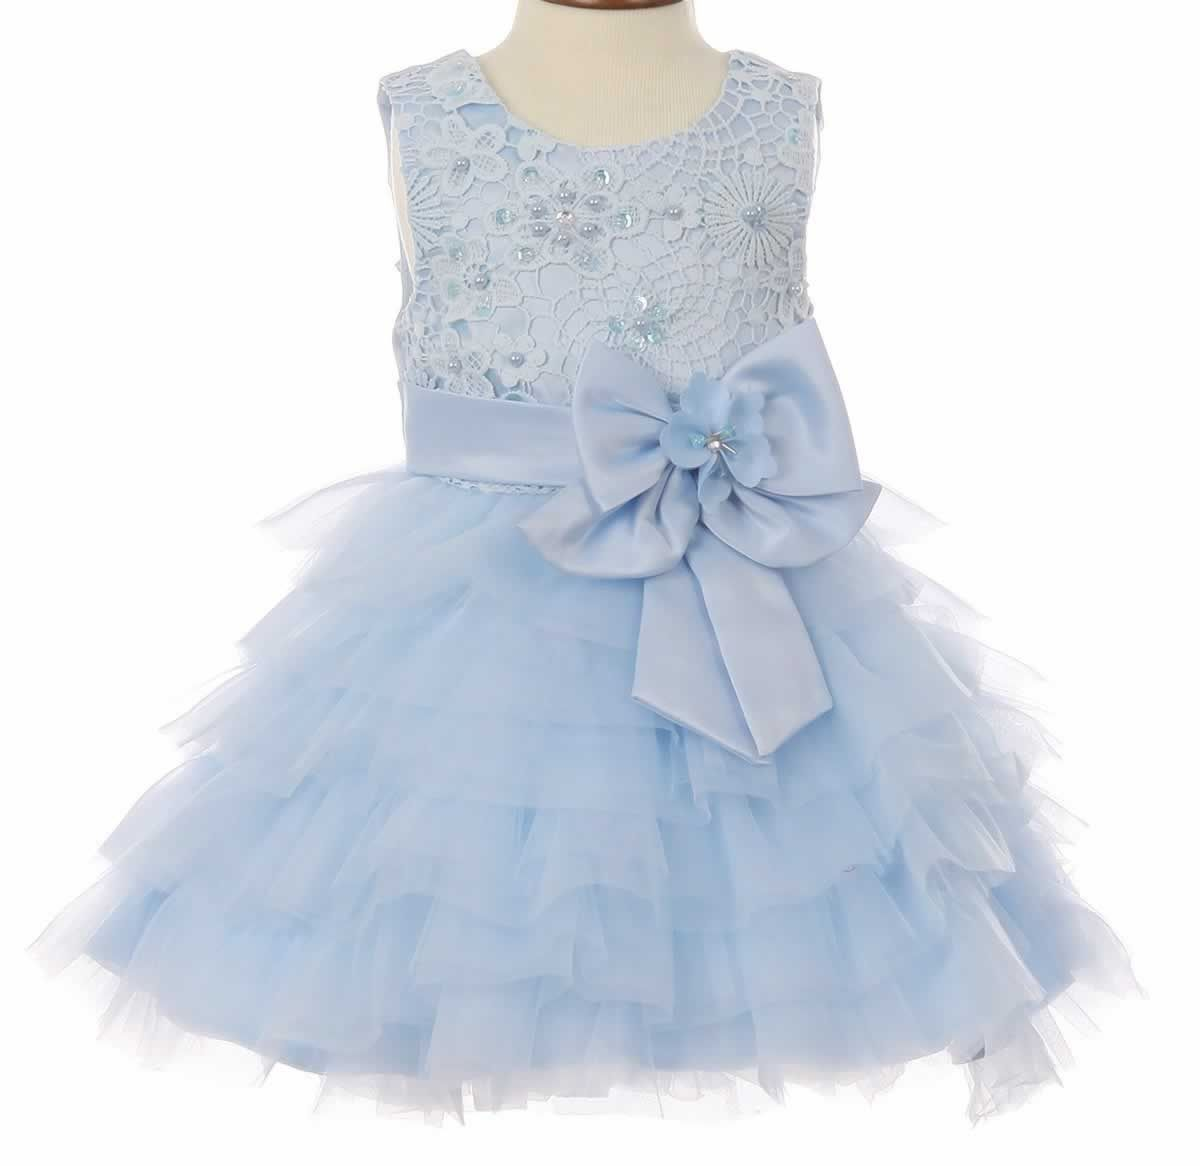 Pin on Pageant Dresses for Little Girls